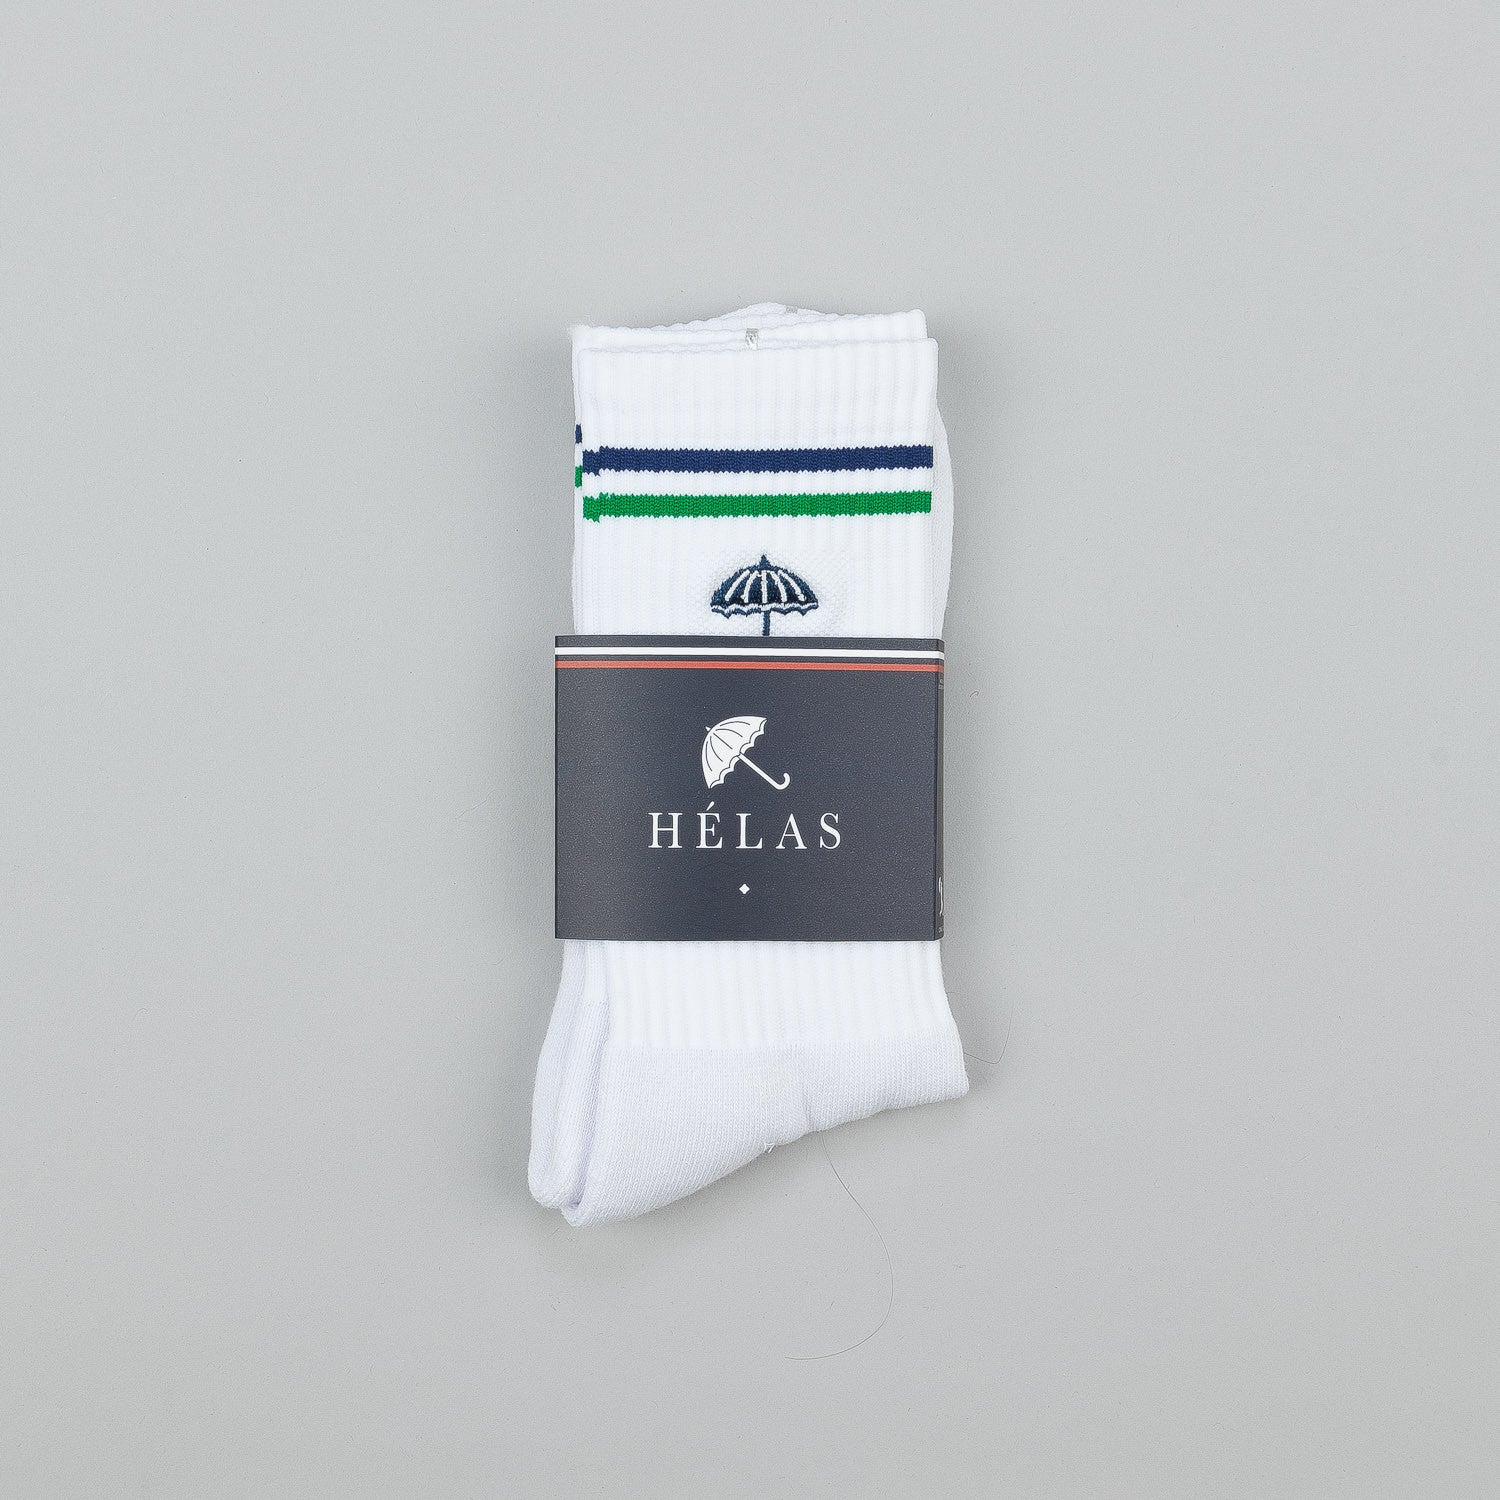 Helas Court Socks